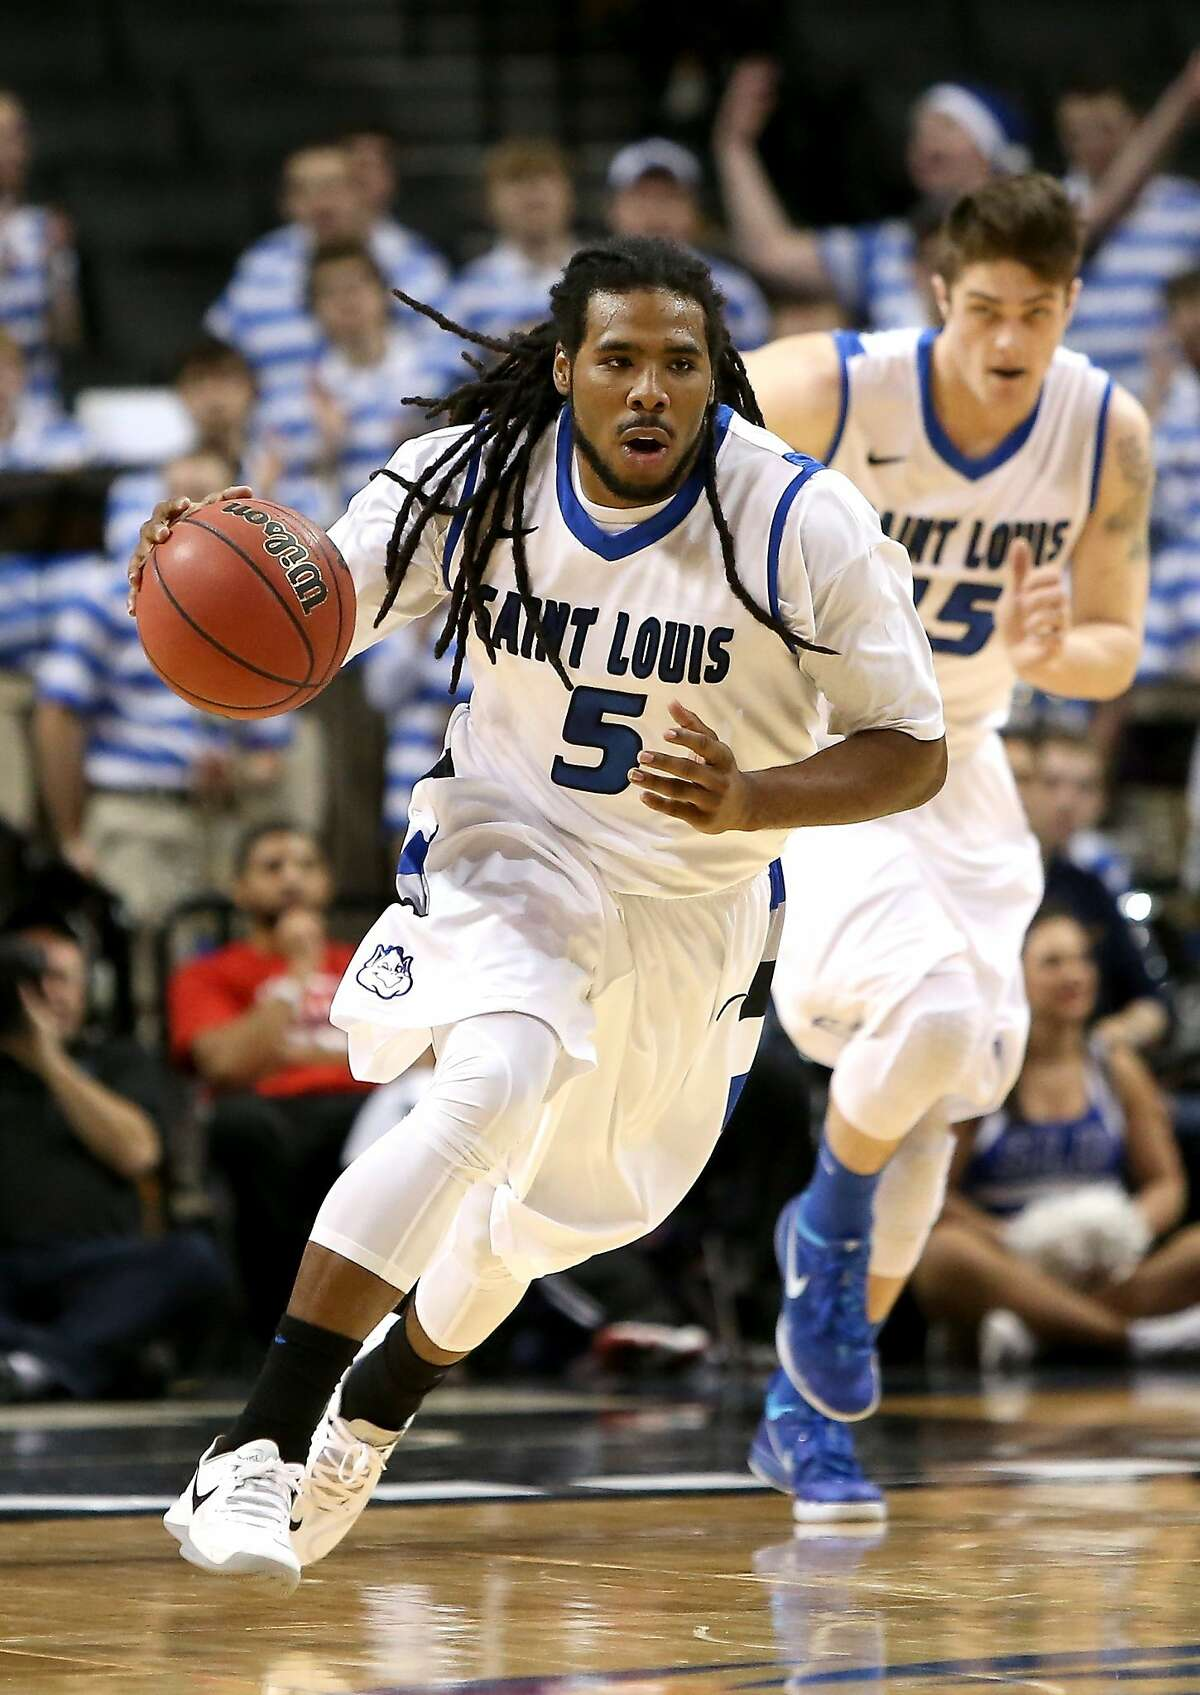 NEW YORK, NY - MARCH 14: Jordair Jett #5 of the Saint Louis Billikens handles the ball in the first half against the St. Bonaventure Bonnies during the Quarterfinals of the 2014 Atlantic 10 Men's Basketball Tournament at Barclays Center on March 14, 2014 in the Brooklyn Borough of New York City. (Photo by Mike Lawrie/Getty Images)